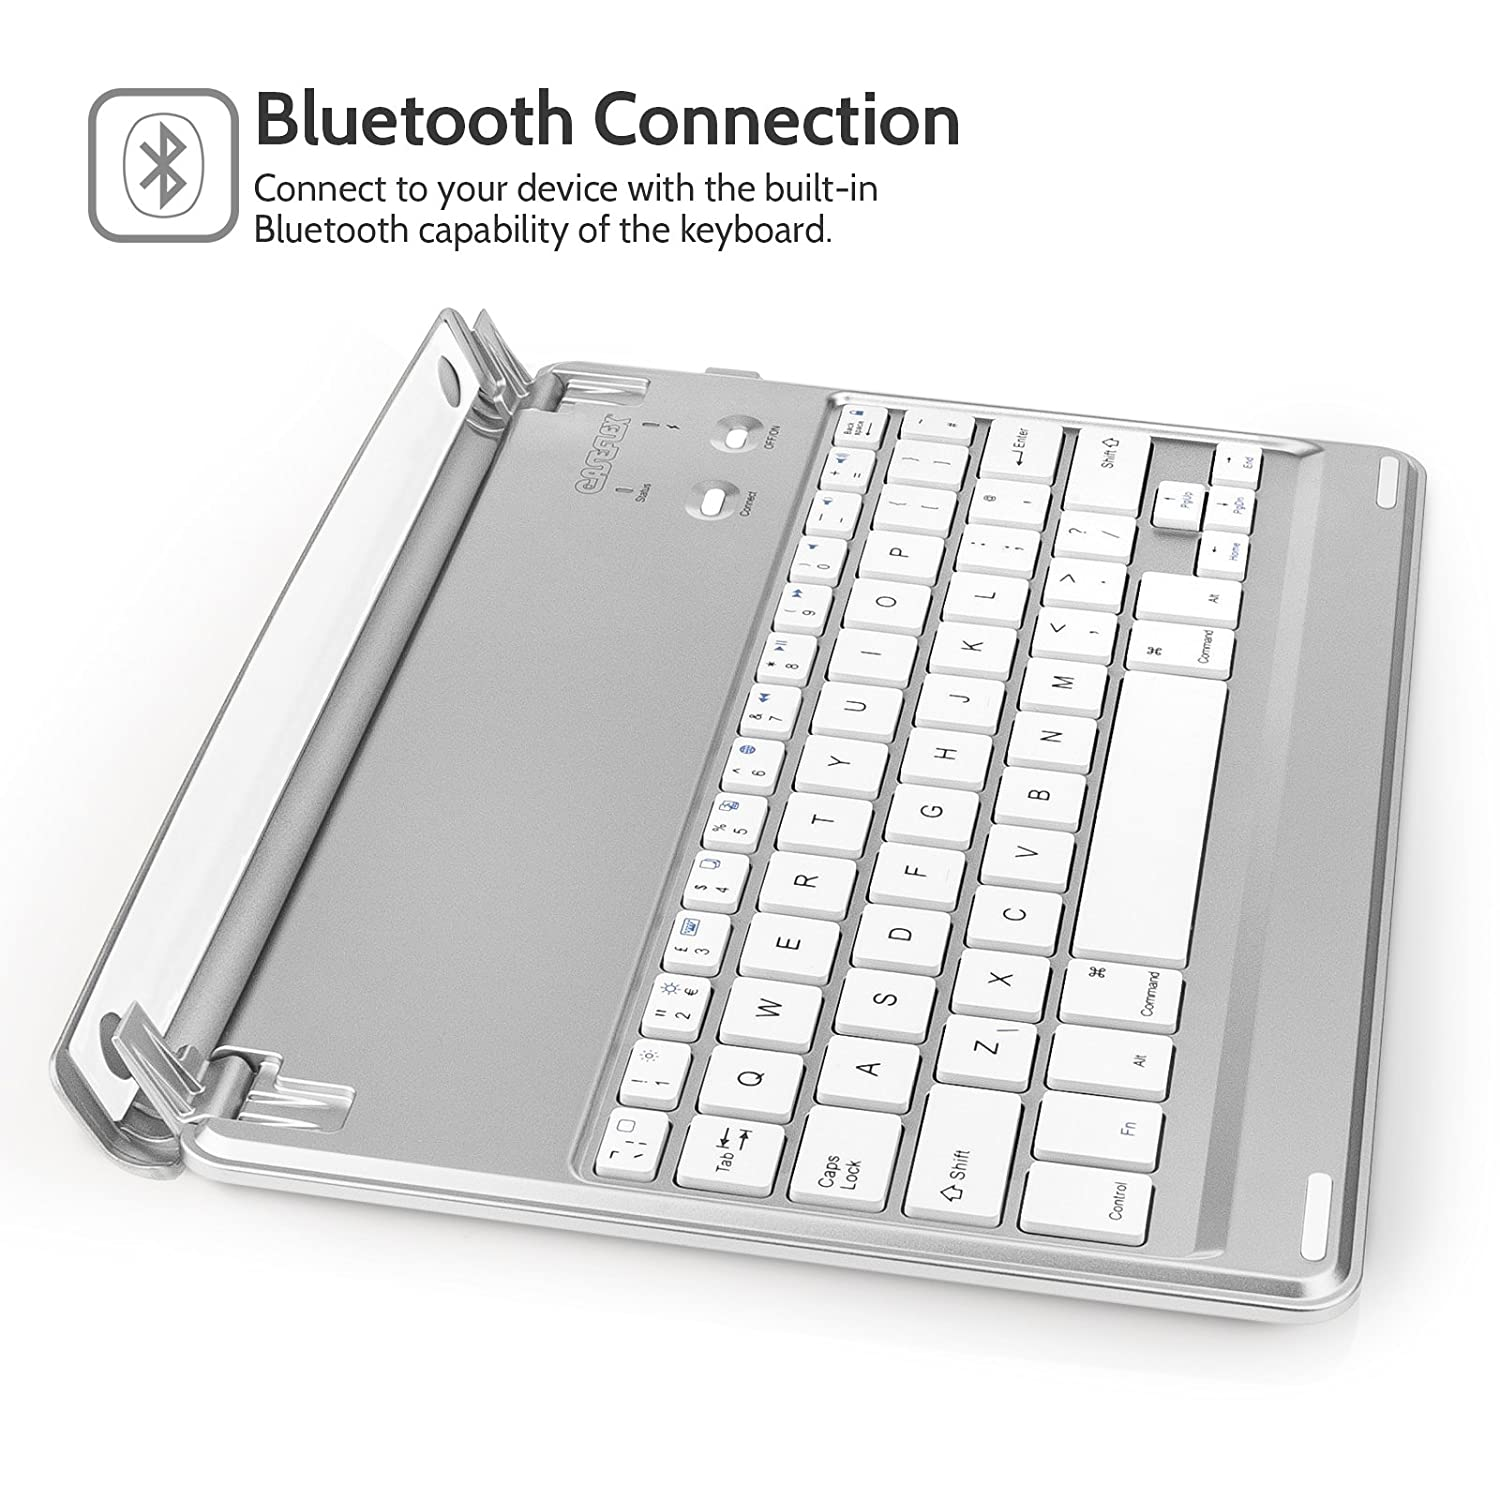 afddc57ea17 Caseflex Ultra Thin iPad Air / iPad Air 2 Bluetooth Keyboard Cover with Magnetic  Grip, Adjustable Holding Stand & Long Life Battery [UK QWERTY Layout] for  ...